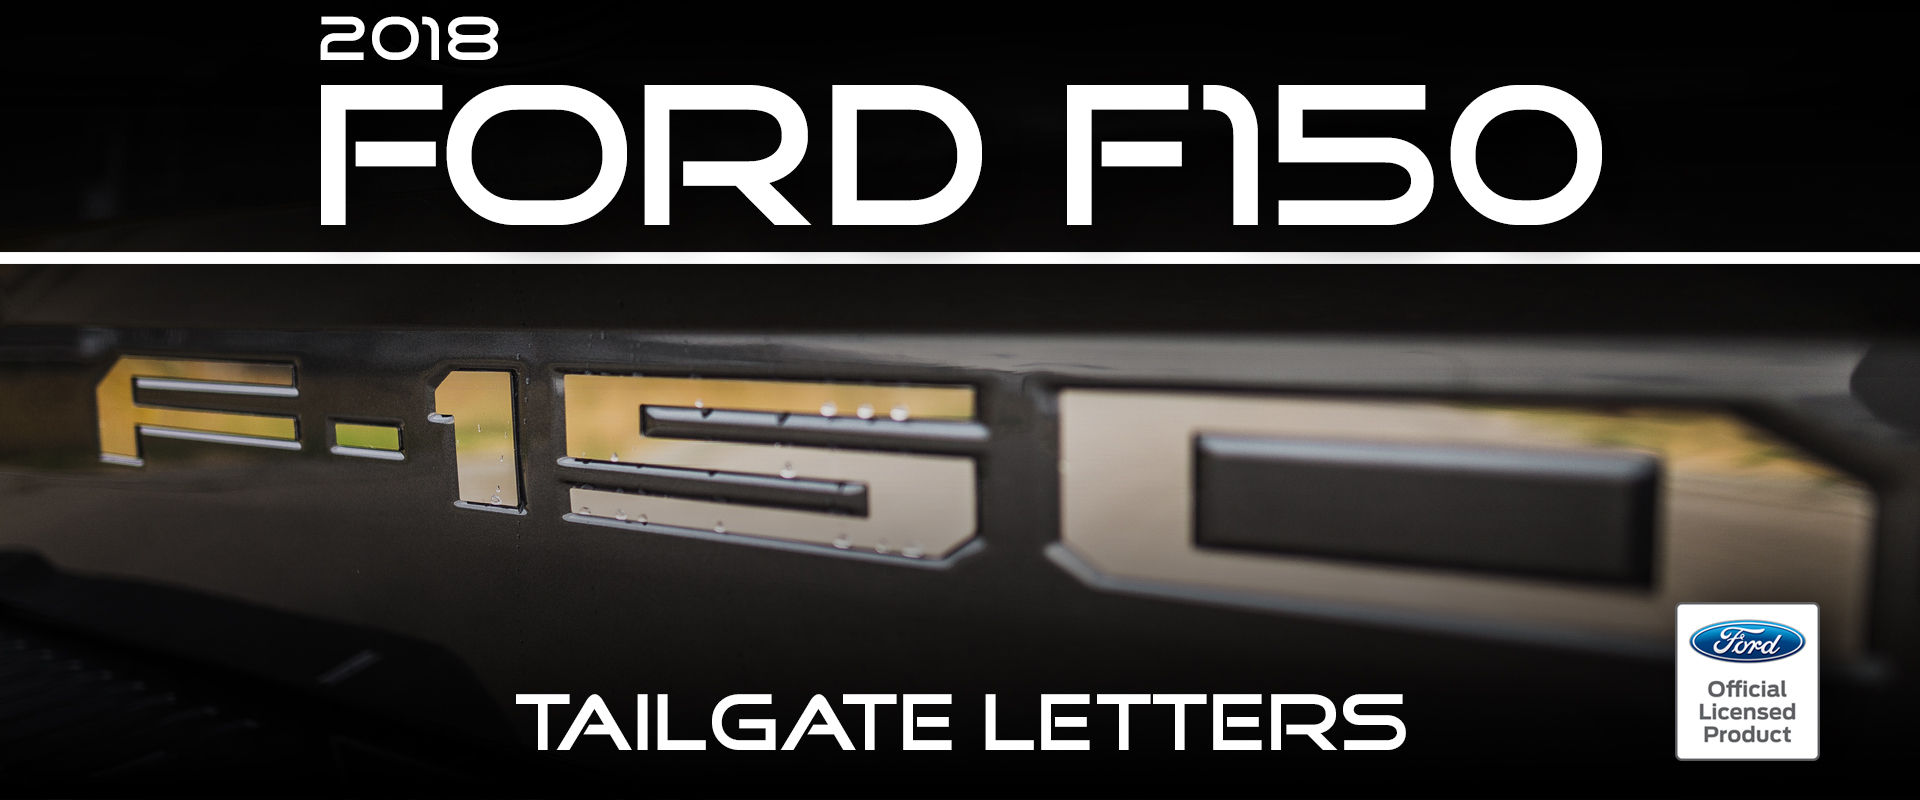 2018 Ford F-150 Tailgate Letter Inserts